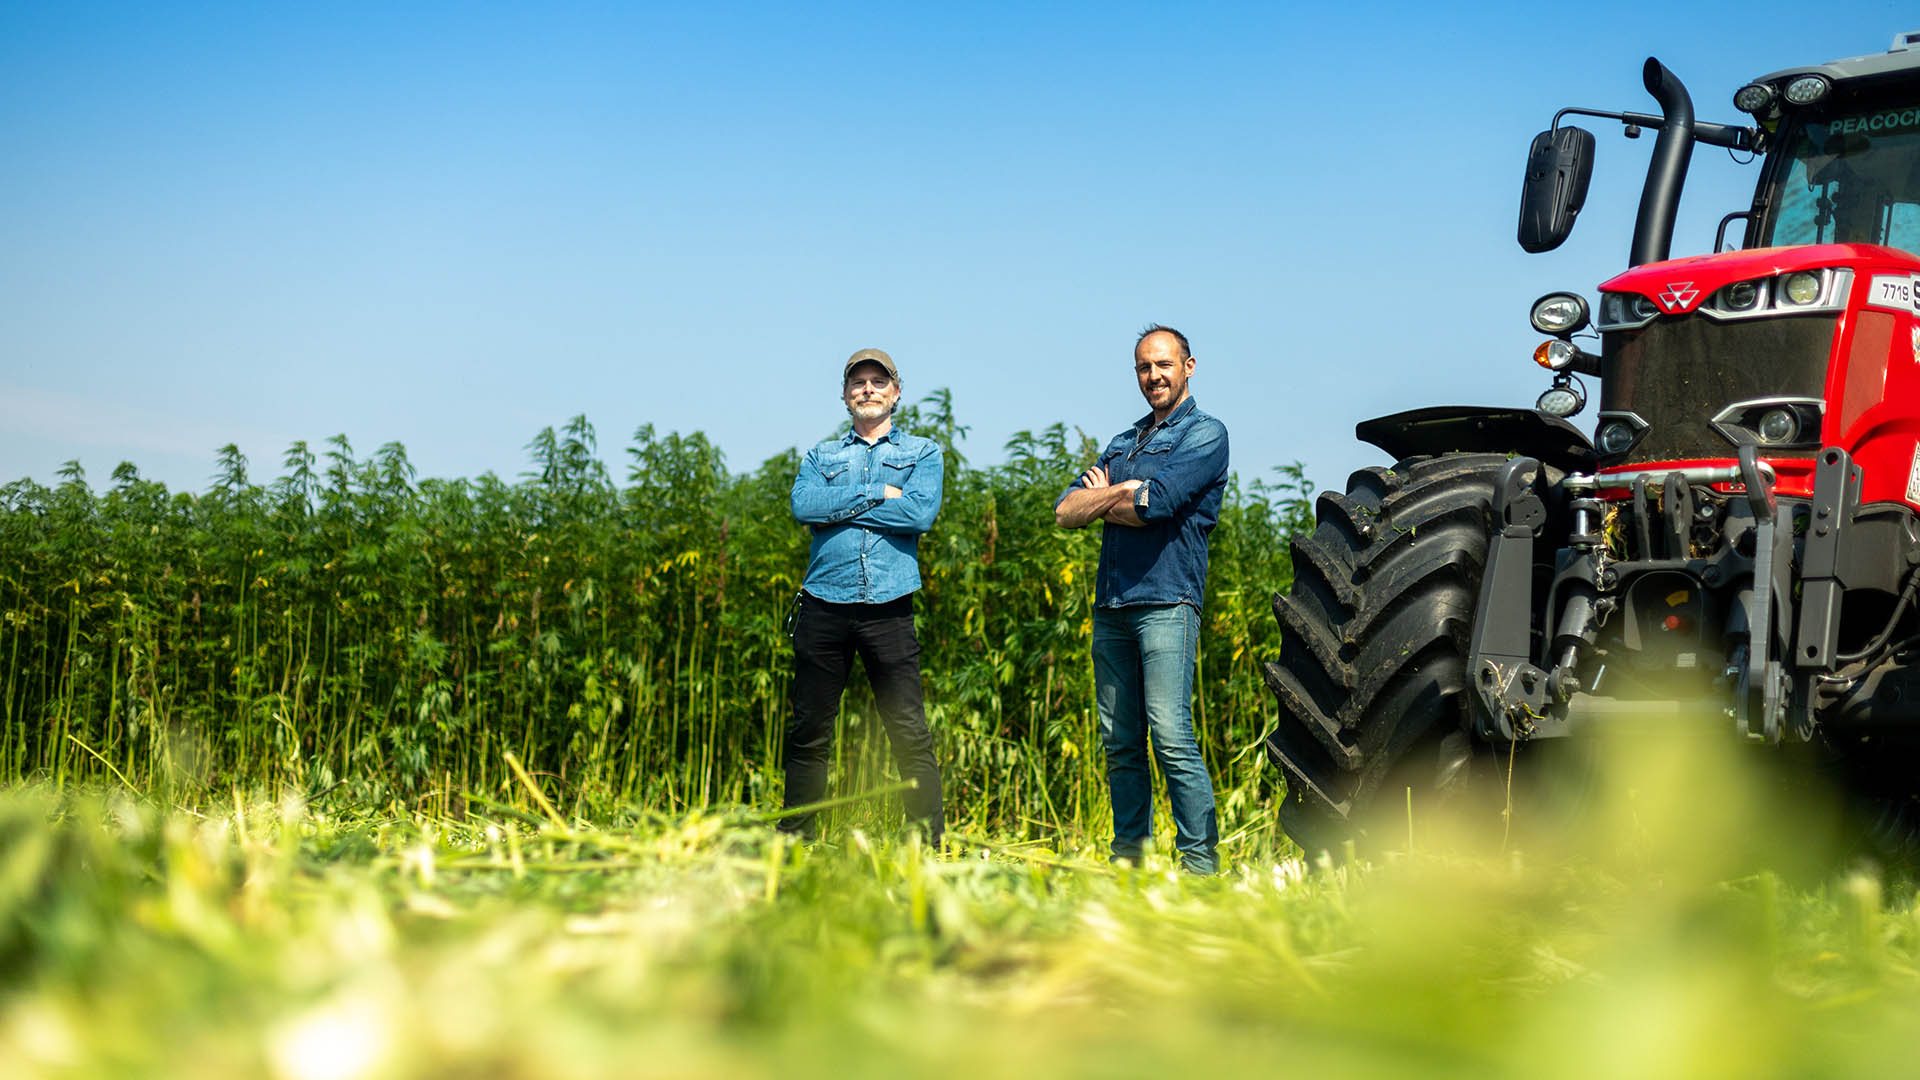 Scott Simpson and Sam Baumber stand next to a tractor in a partially harvested hemp field.